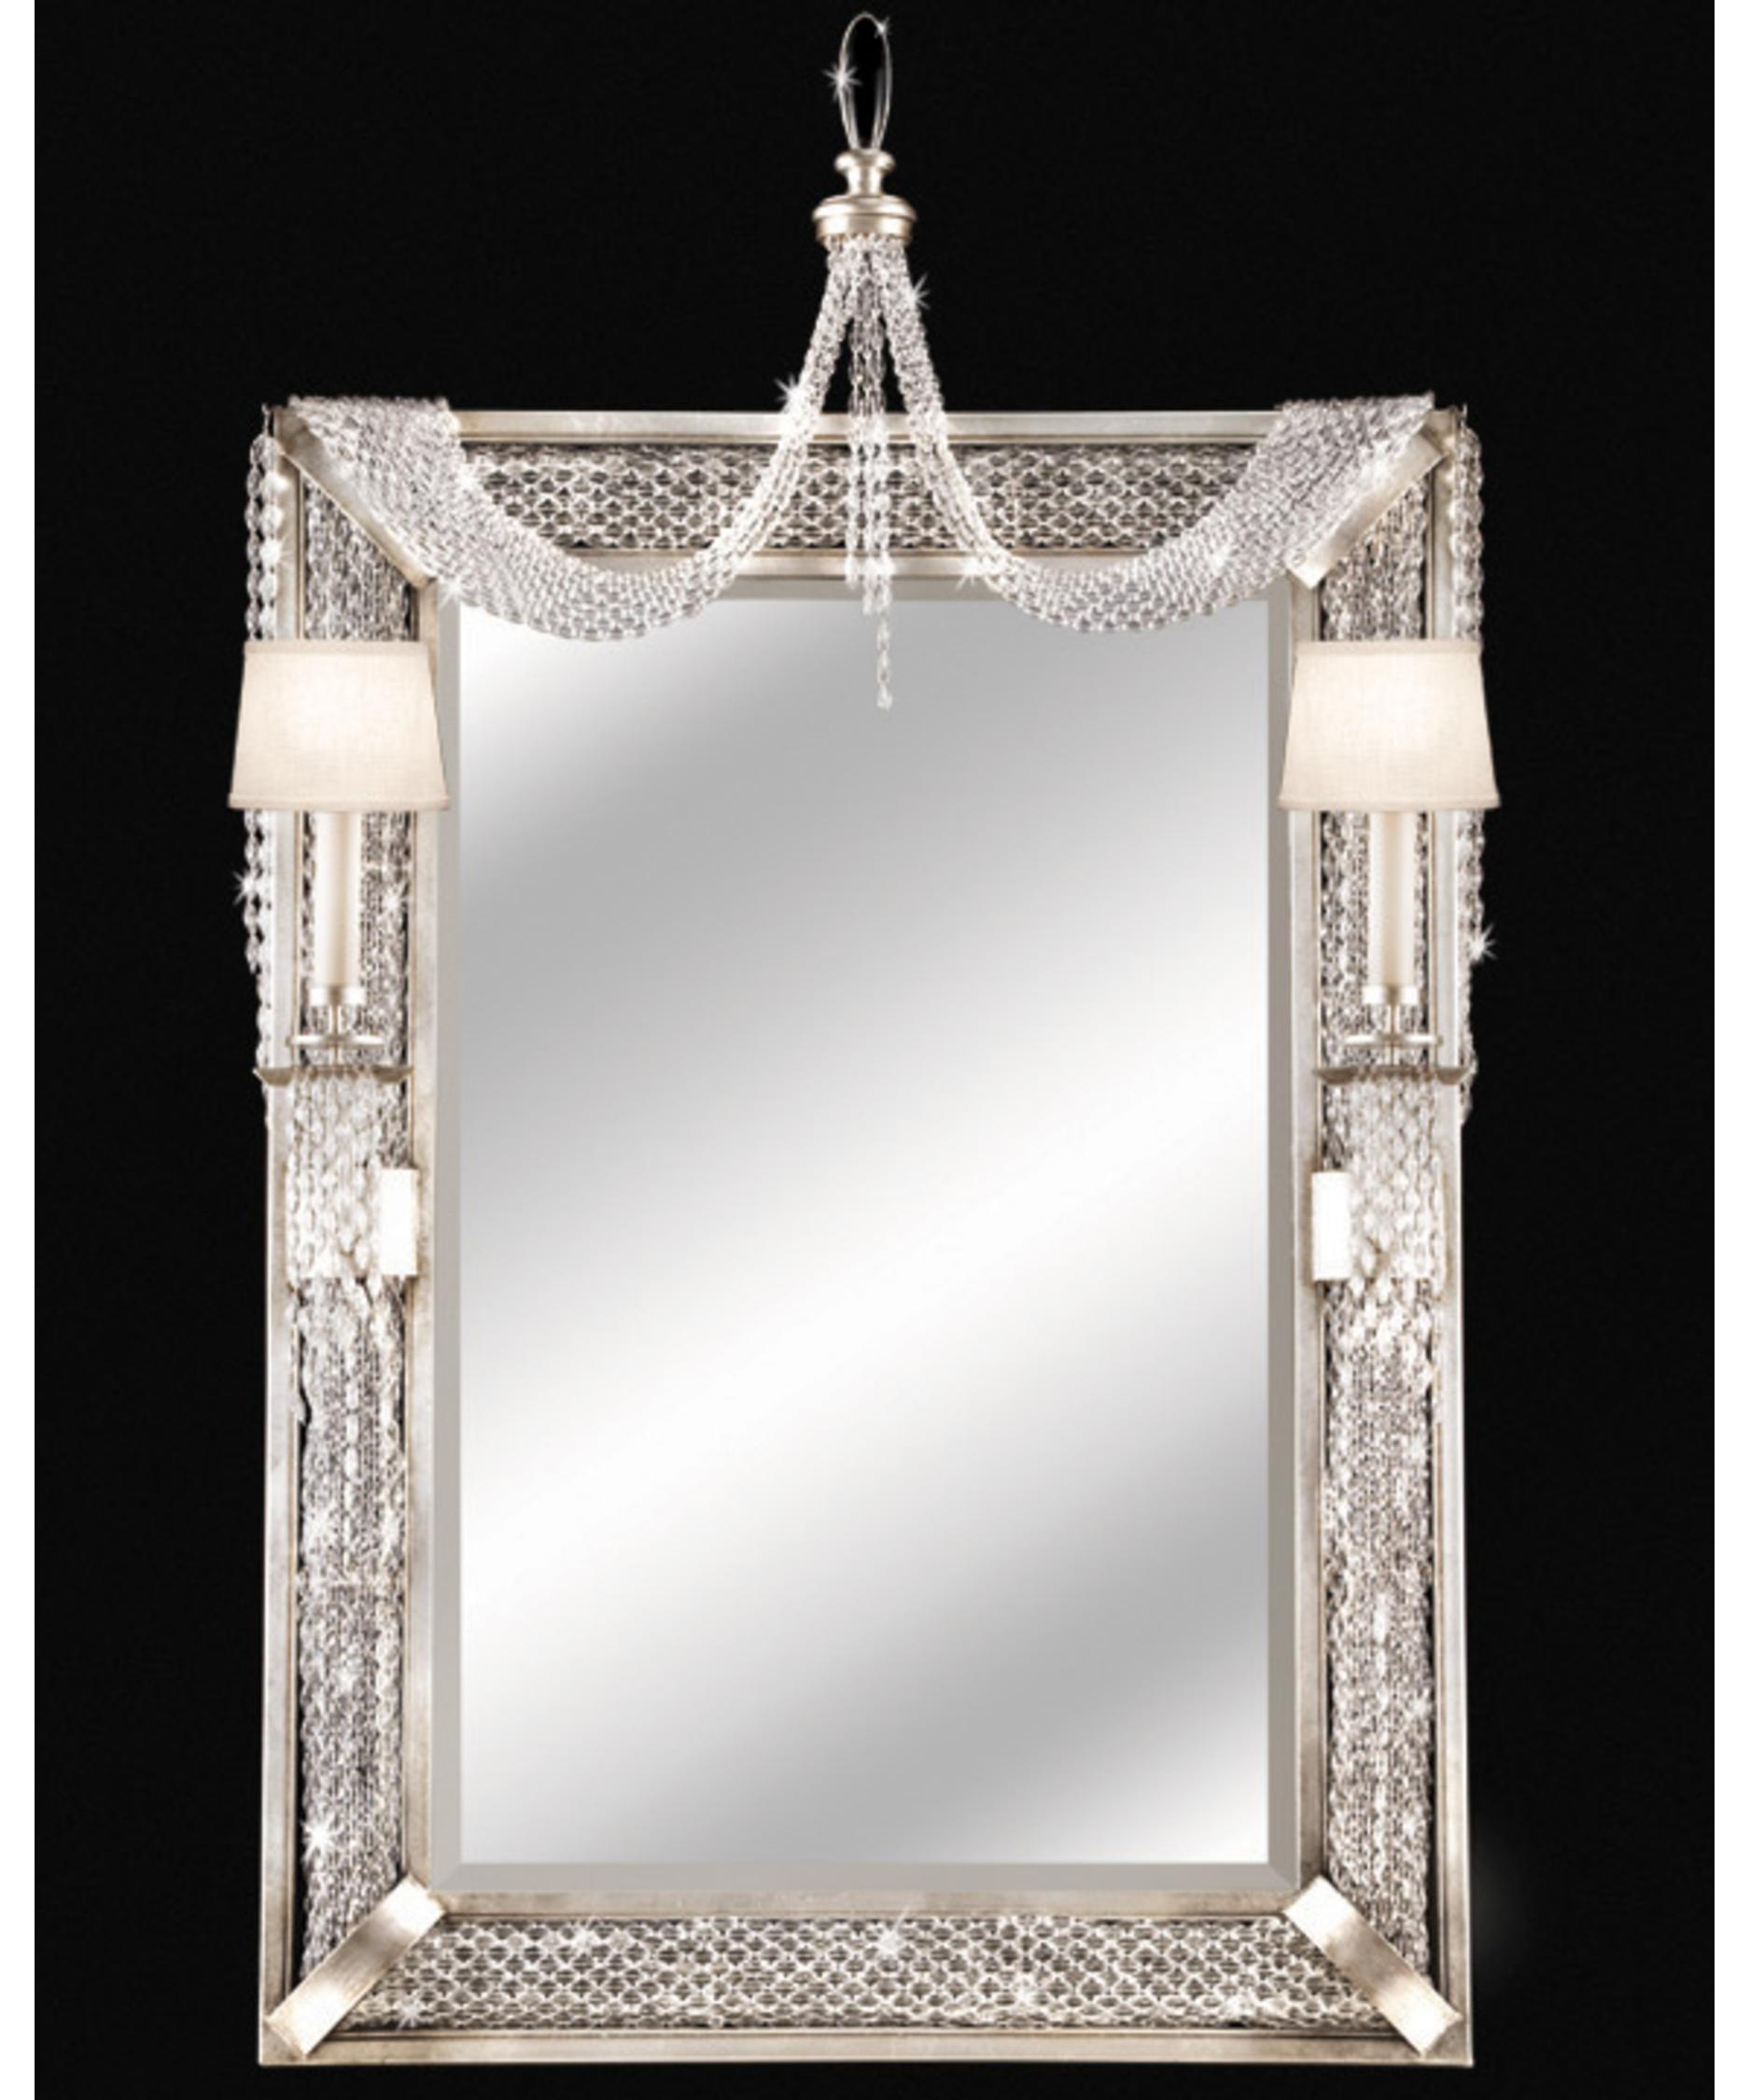 Fine Art Lamps 751255 Cascades 9 Inch Wall Mirror | Capitol In Mirror With Crystals (Image 10 of 20)